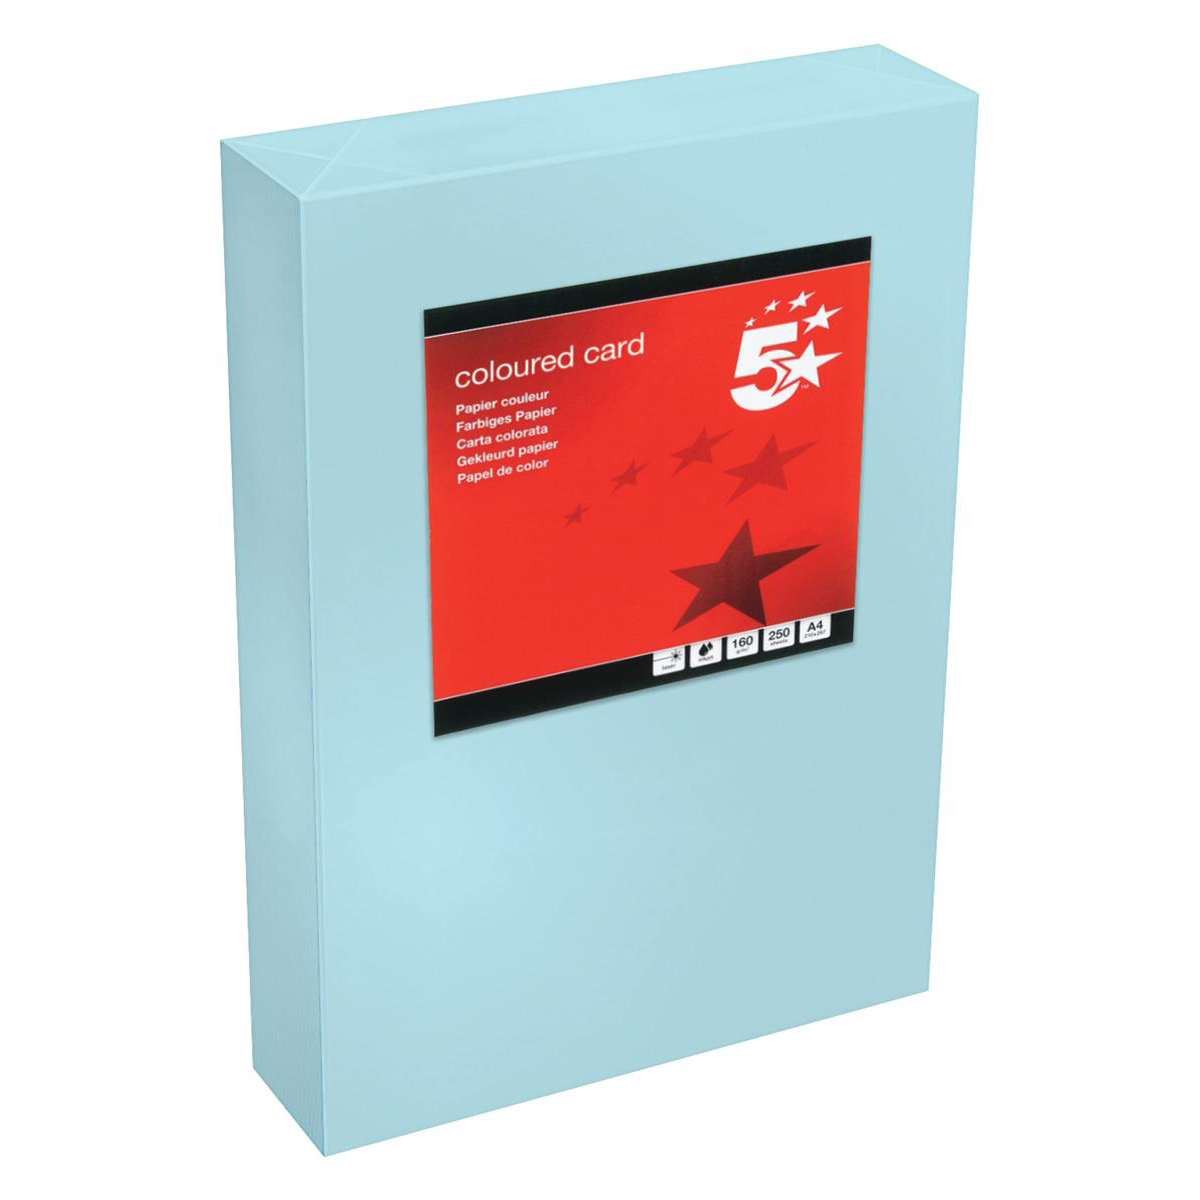 5 Star Office Coloured Card Tinted 160gsm A4 Medium Blue Pack 250